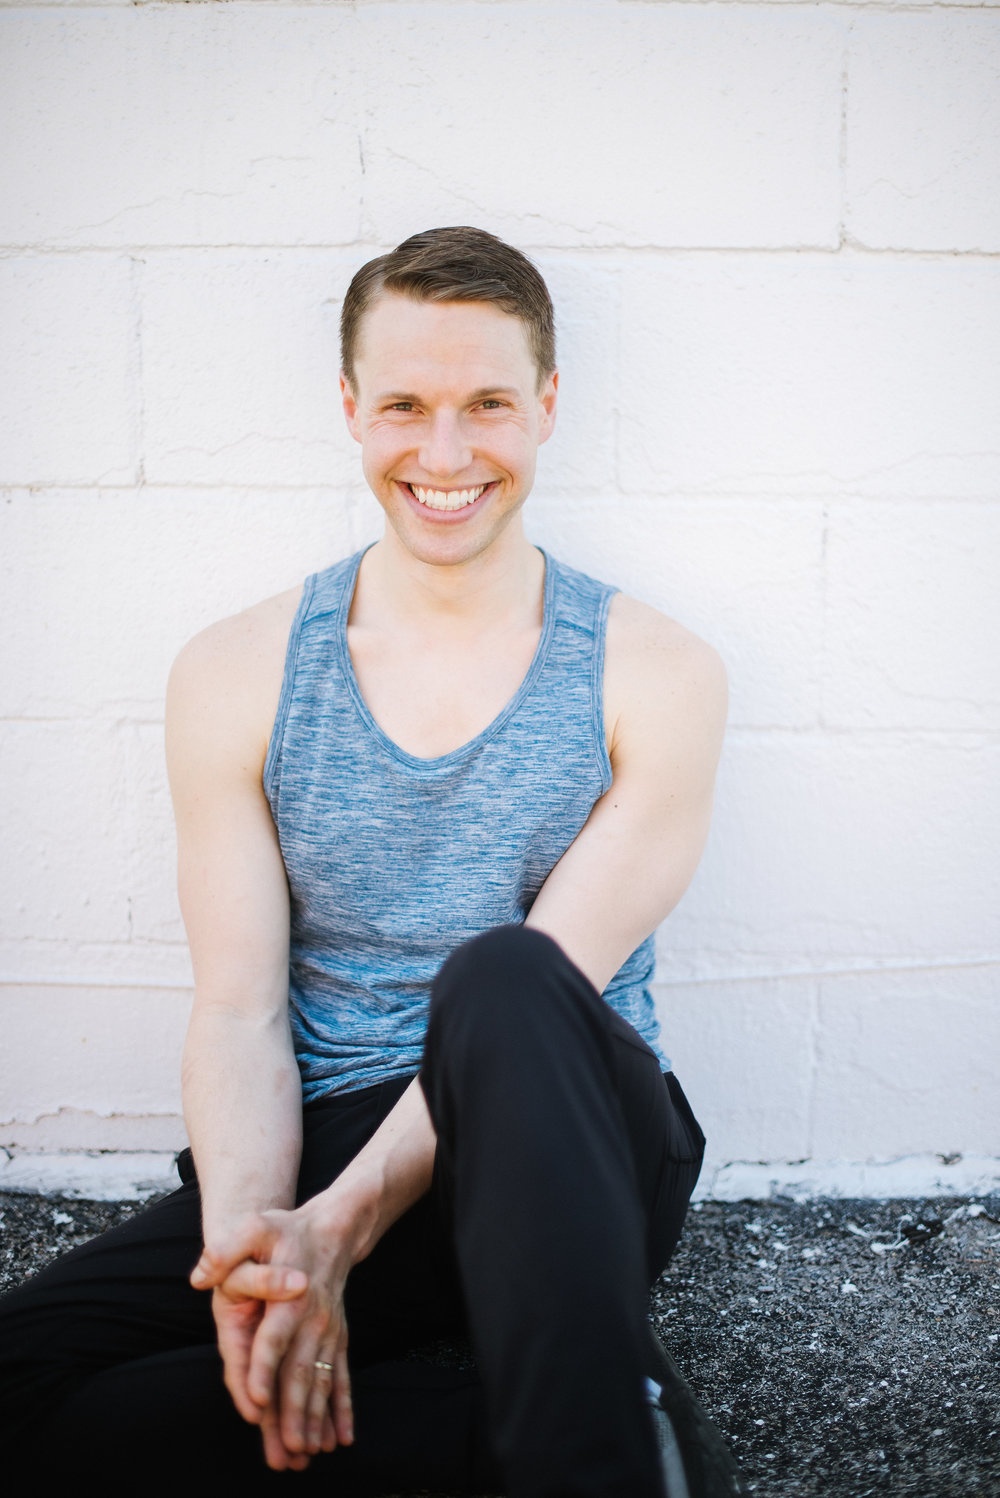 Scott Bartel   Scott started practicing yoga in early 2016 as an extension of his regular workout routine and quickly knew it would become a life long journey. Since then, Scott received his 200-hr Yoga Alliance Certification through Hidden Dragon Yoga and began teaching private and group classes in the OKC area. Positive vibes are at the core of every class Scott teaches, as he encourages students to connect mindful breath to powerful movement, and set intentions that affect positive growth on and off the mat. Come to class prepared to smile and sweat.